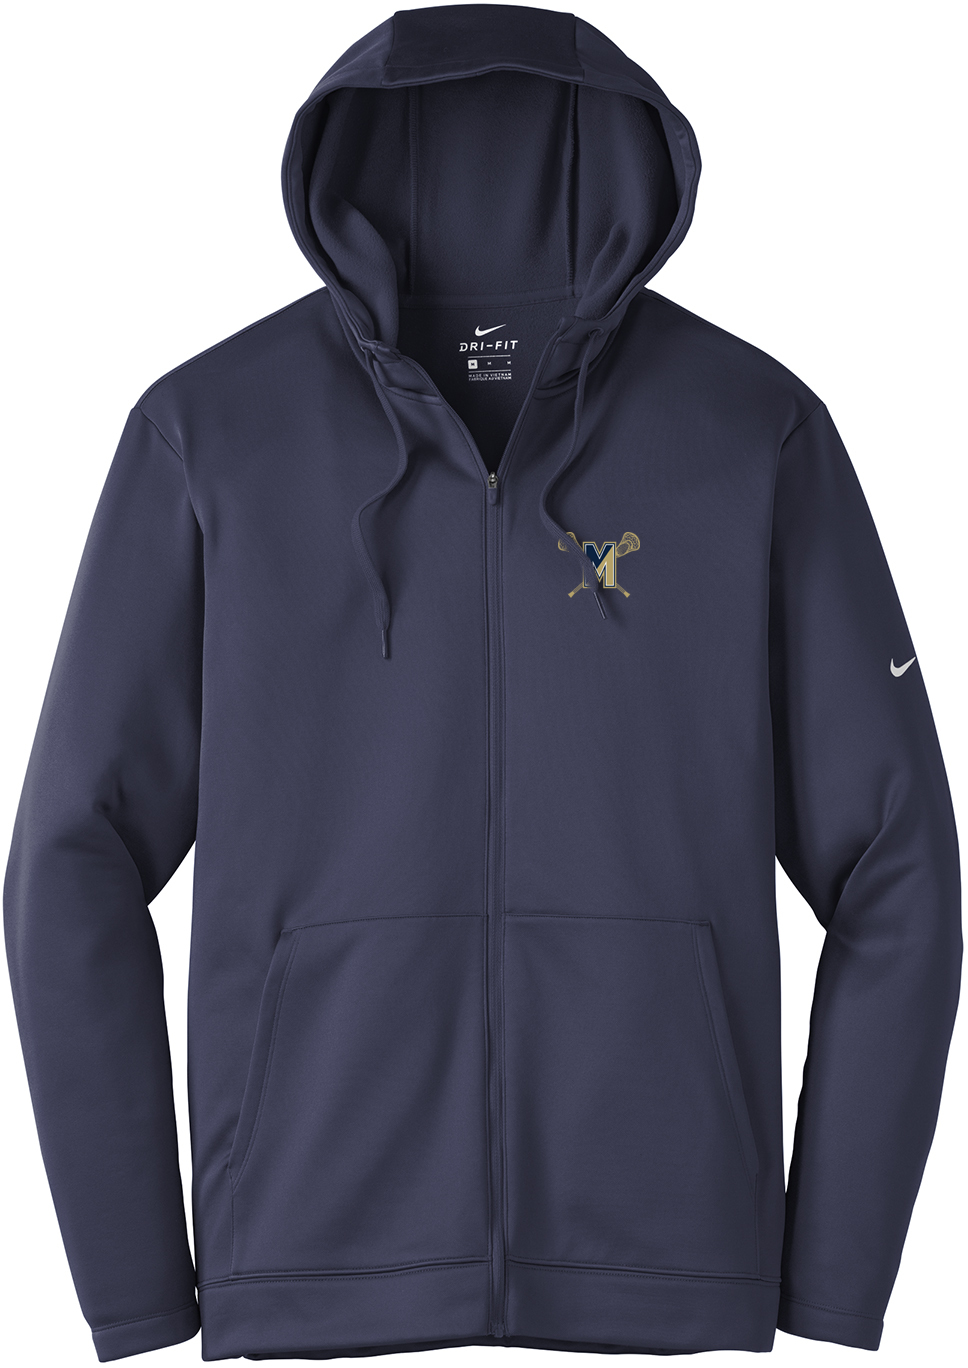 Malden Lacrosse Nike Therma-FIT Full Zip Hoodie